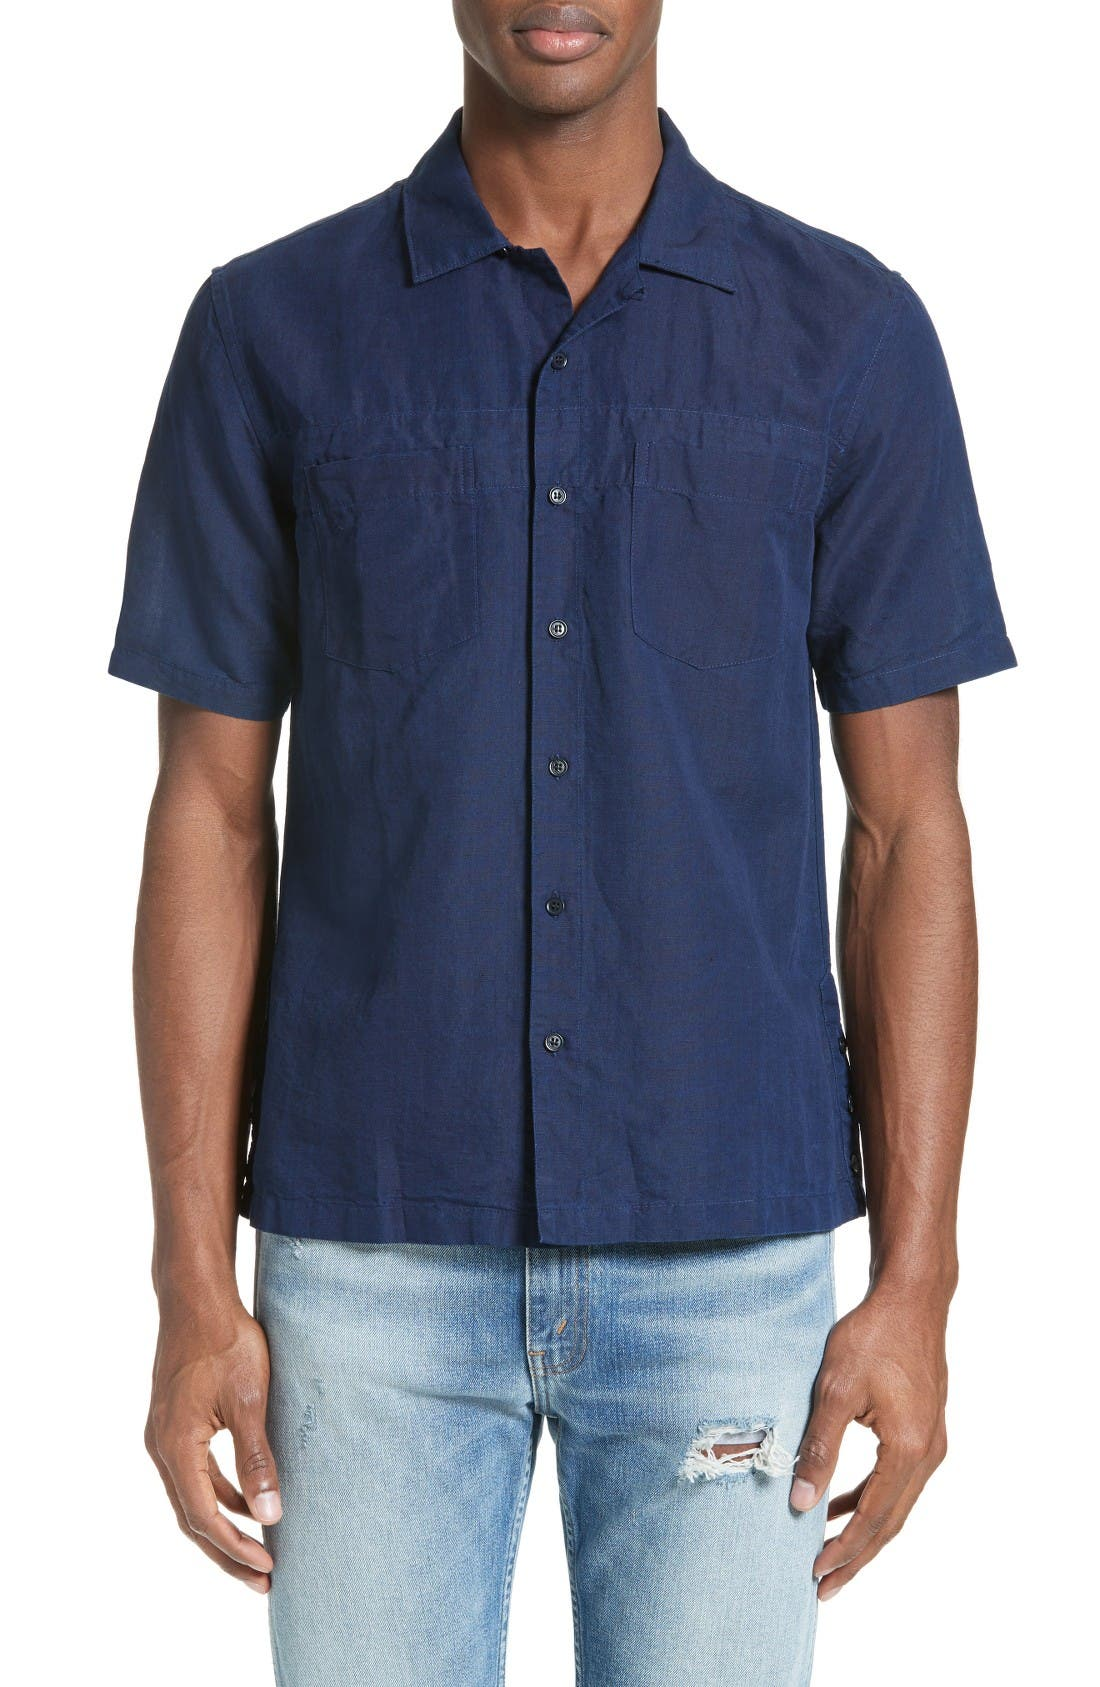 LEVI'S® MADE & CRAFTED™ Riviera Camp Shirt